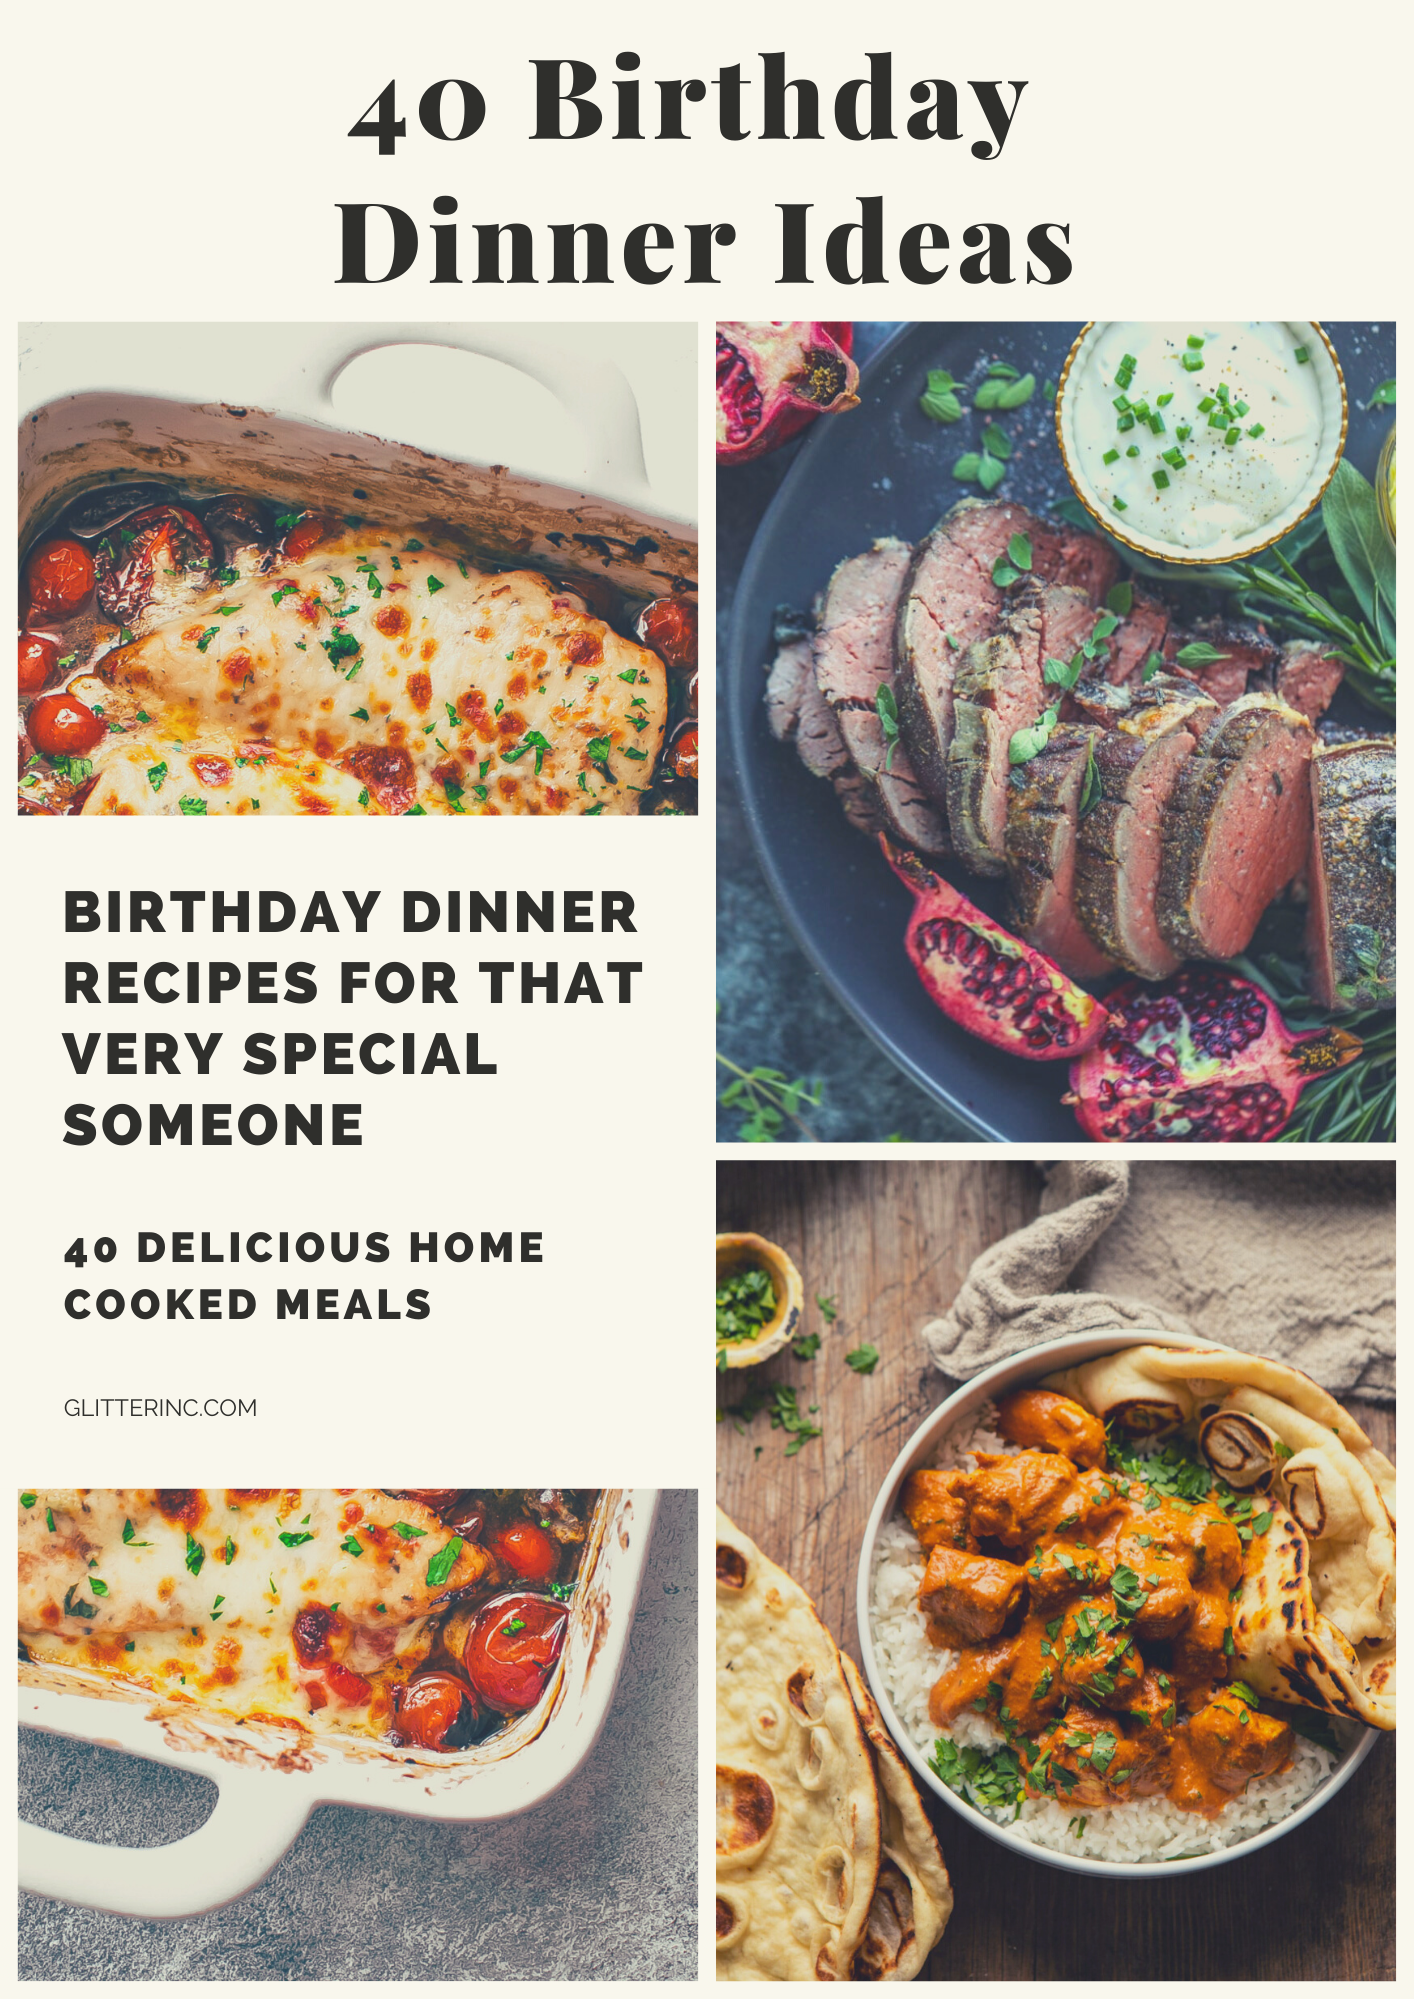 40 Birthday Dinner Ideas At Home Glitter Inc Blog